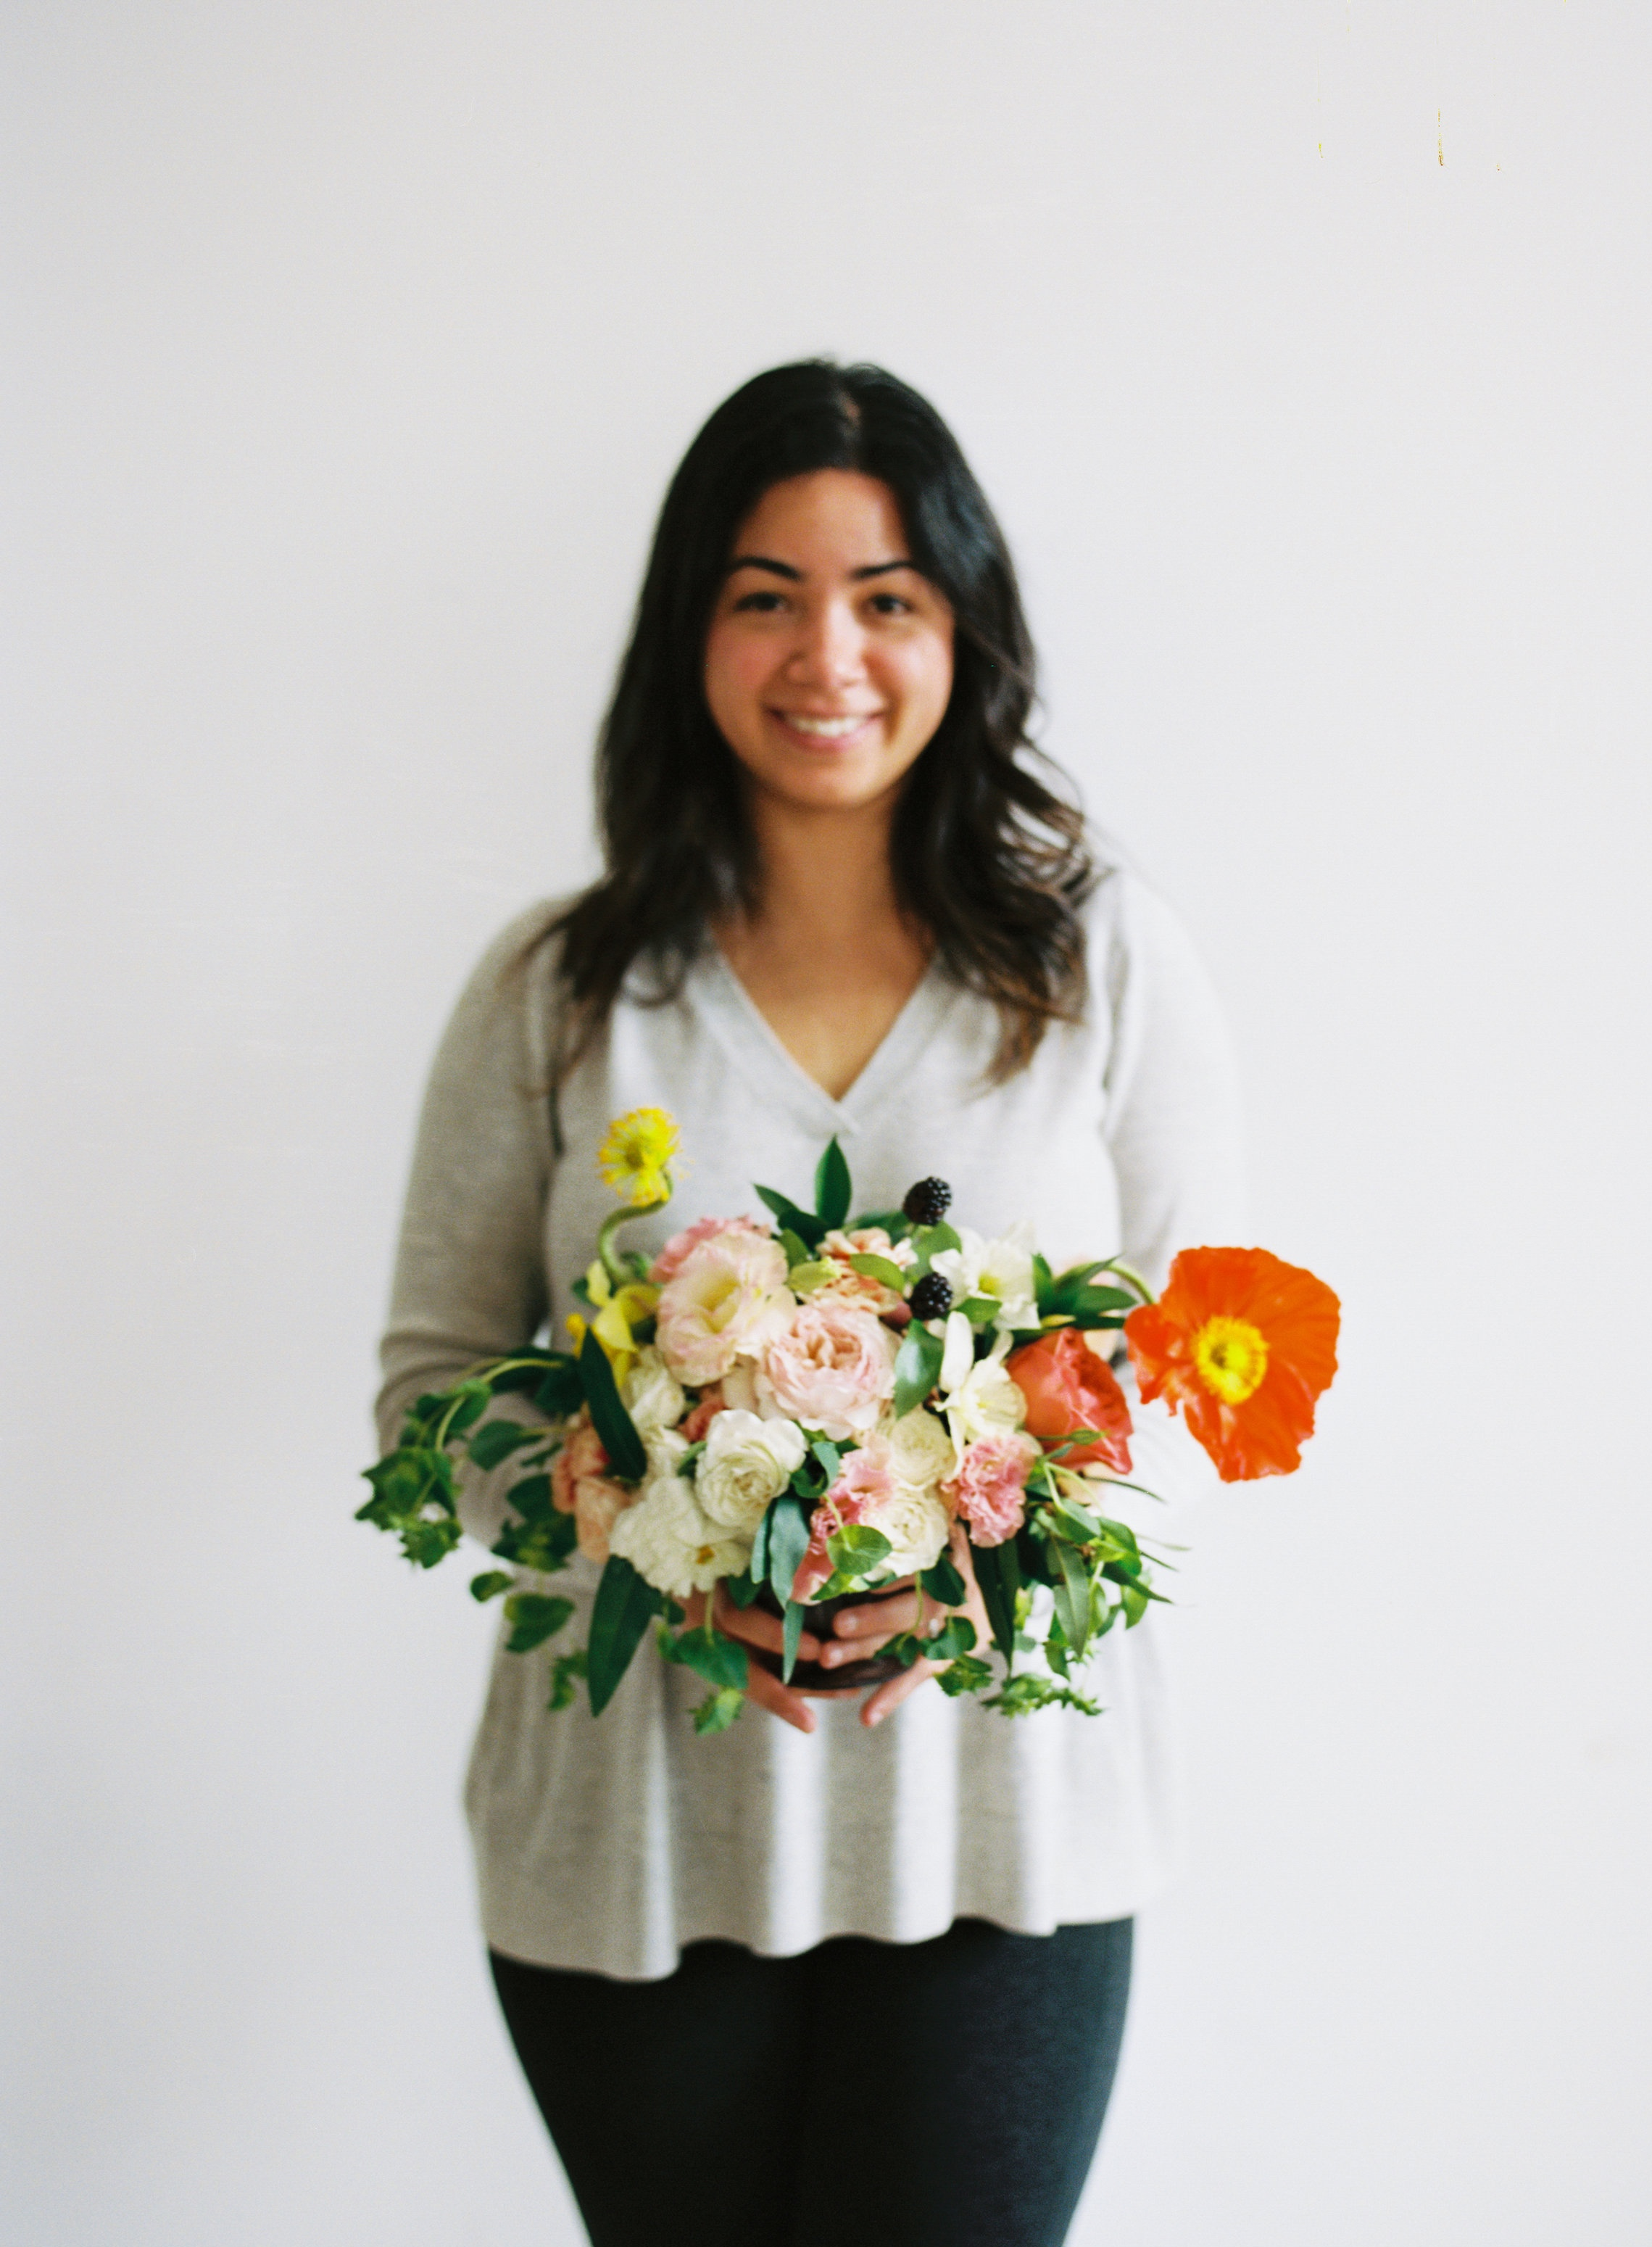 dc-wedding-planners-claire-duran-wedding-and-events